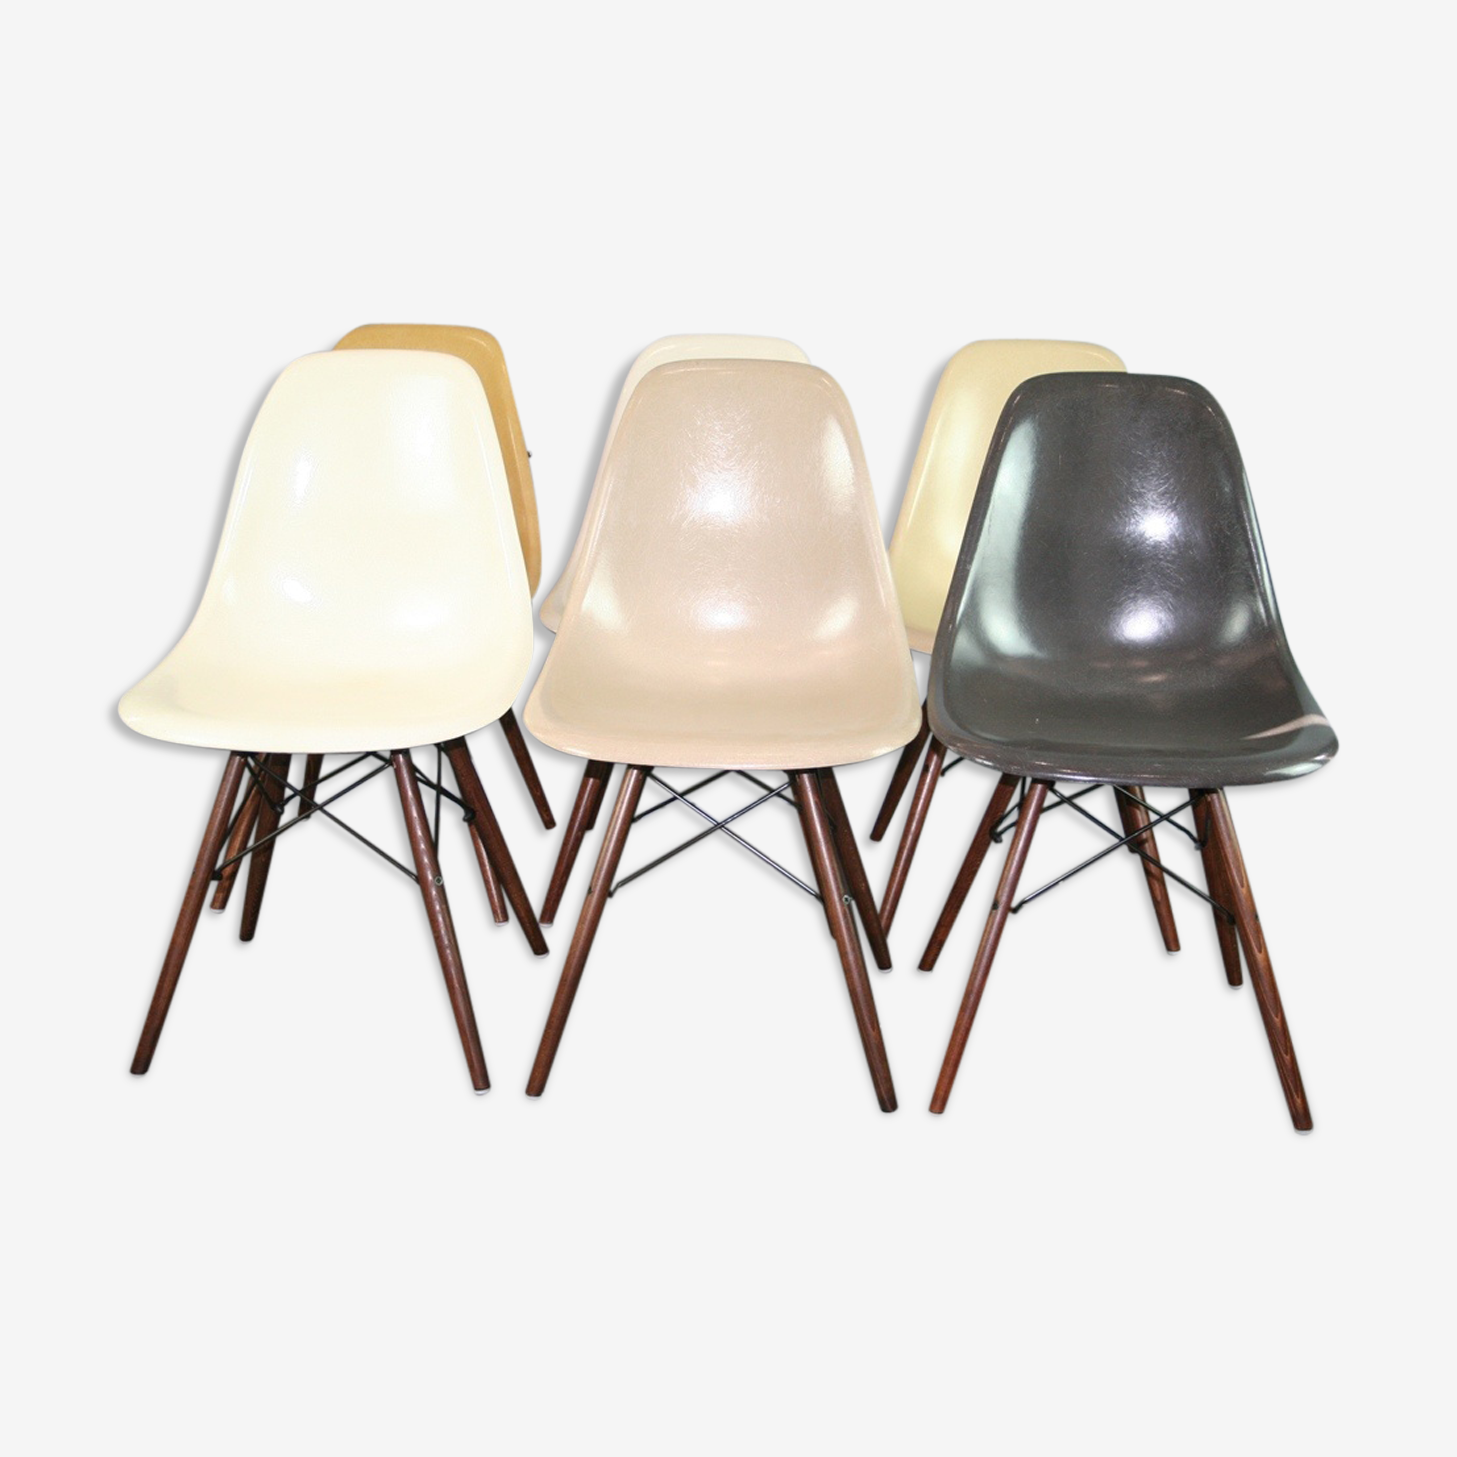 Lot 6 chairs DSW Charles Eames Herman Miller